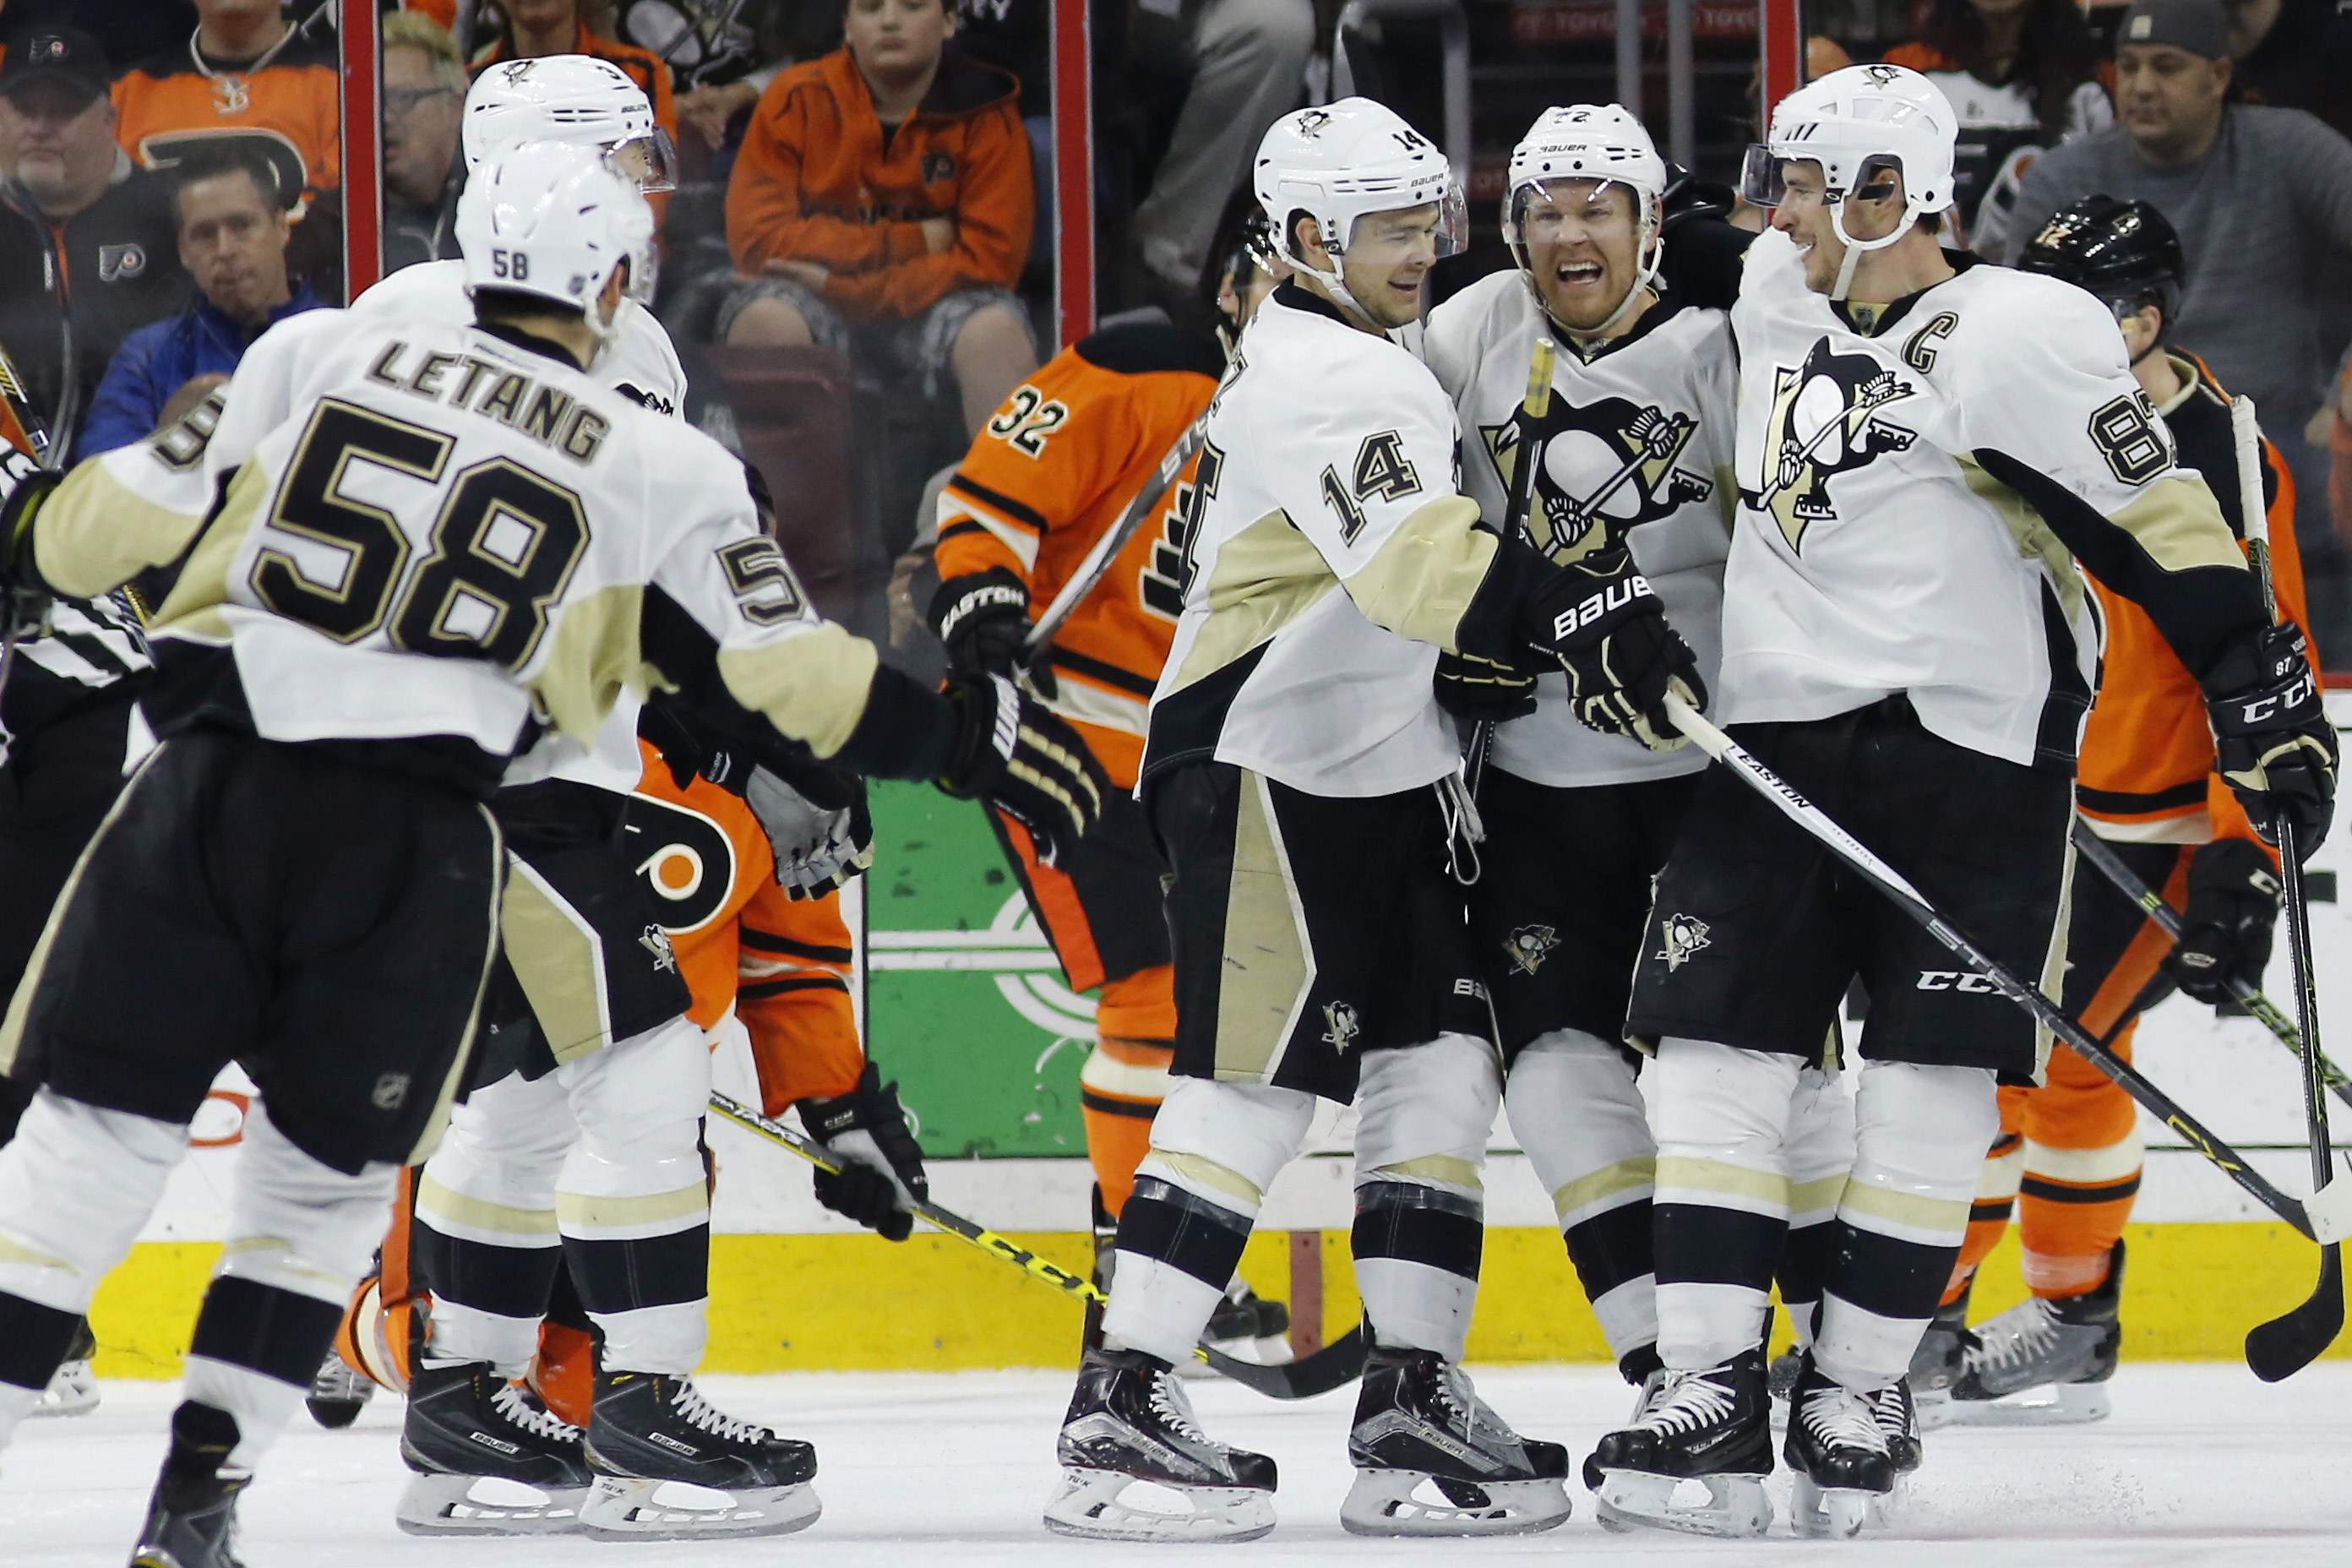 Pittsburgh Penguins' Sidney Crosby, from right, Patric Hornqvist, Chris Kunitz and Kris Letang celebrate after Kunitz's goal during the second period of an NHL hockey game against the Philadelphia Flyers, Saturday, March 19, 2016, in Philadelphia. (AP Pho